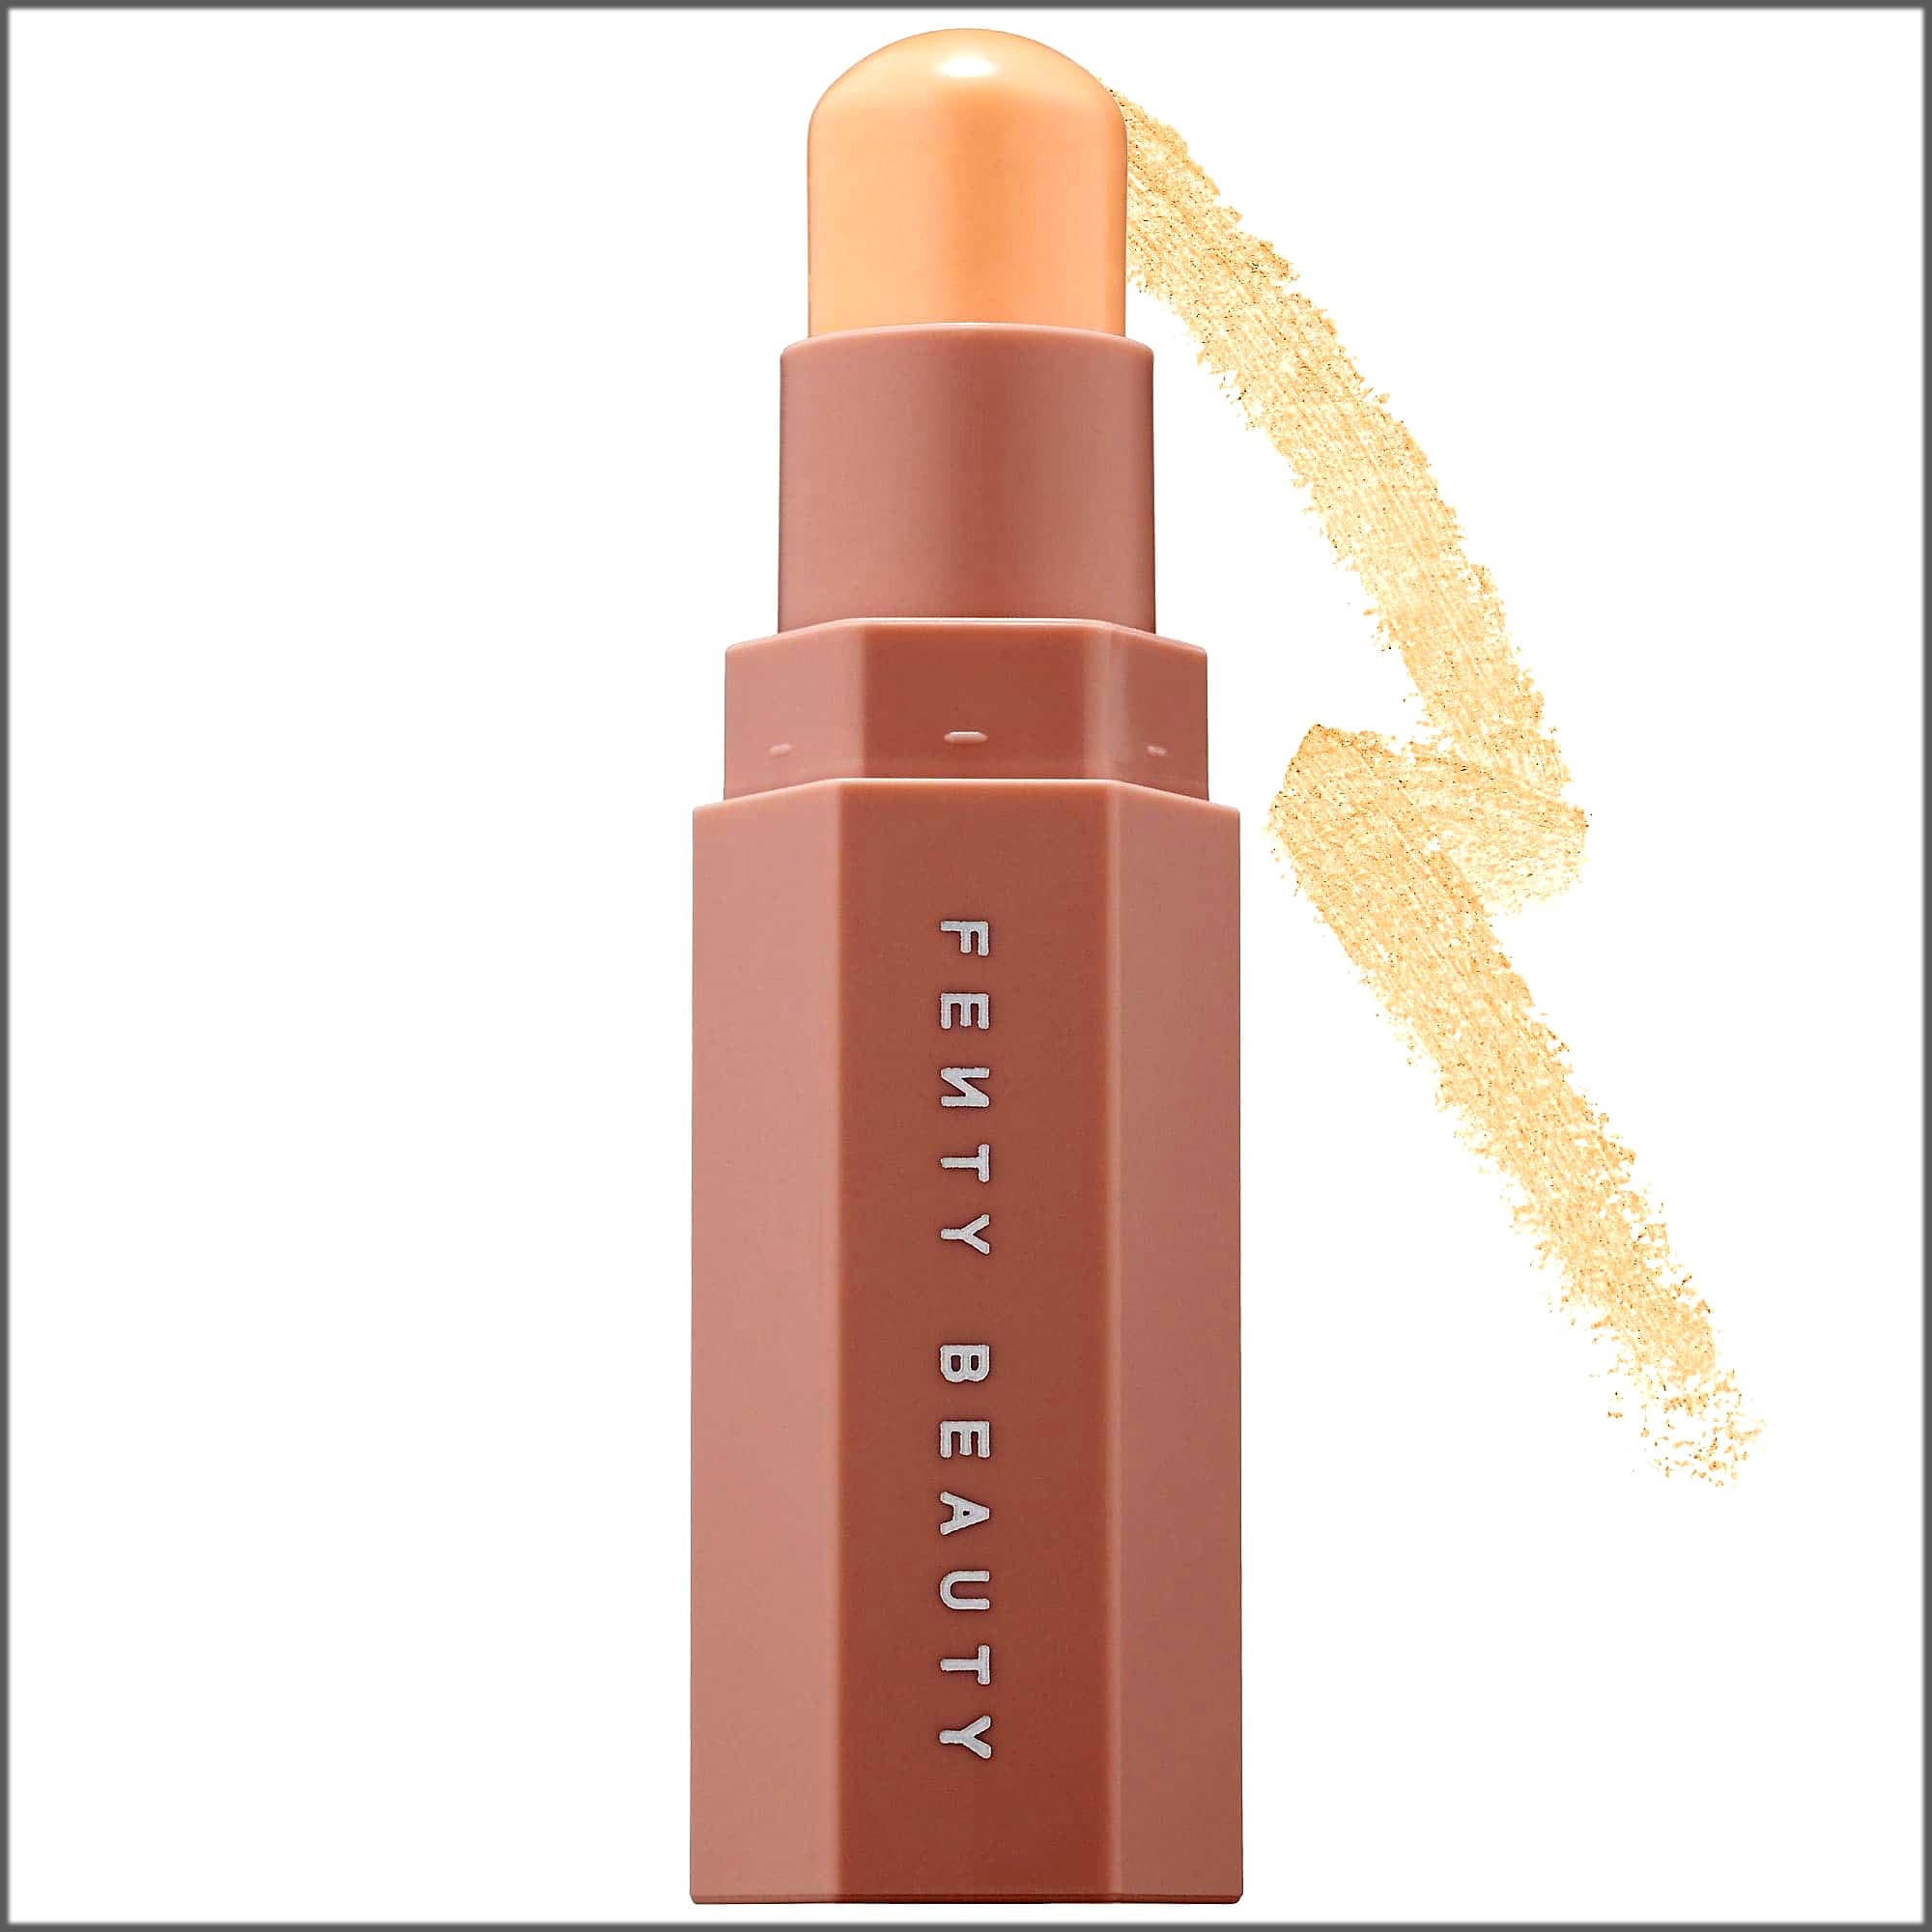 Fenty beauty concealer for medium brown skin